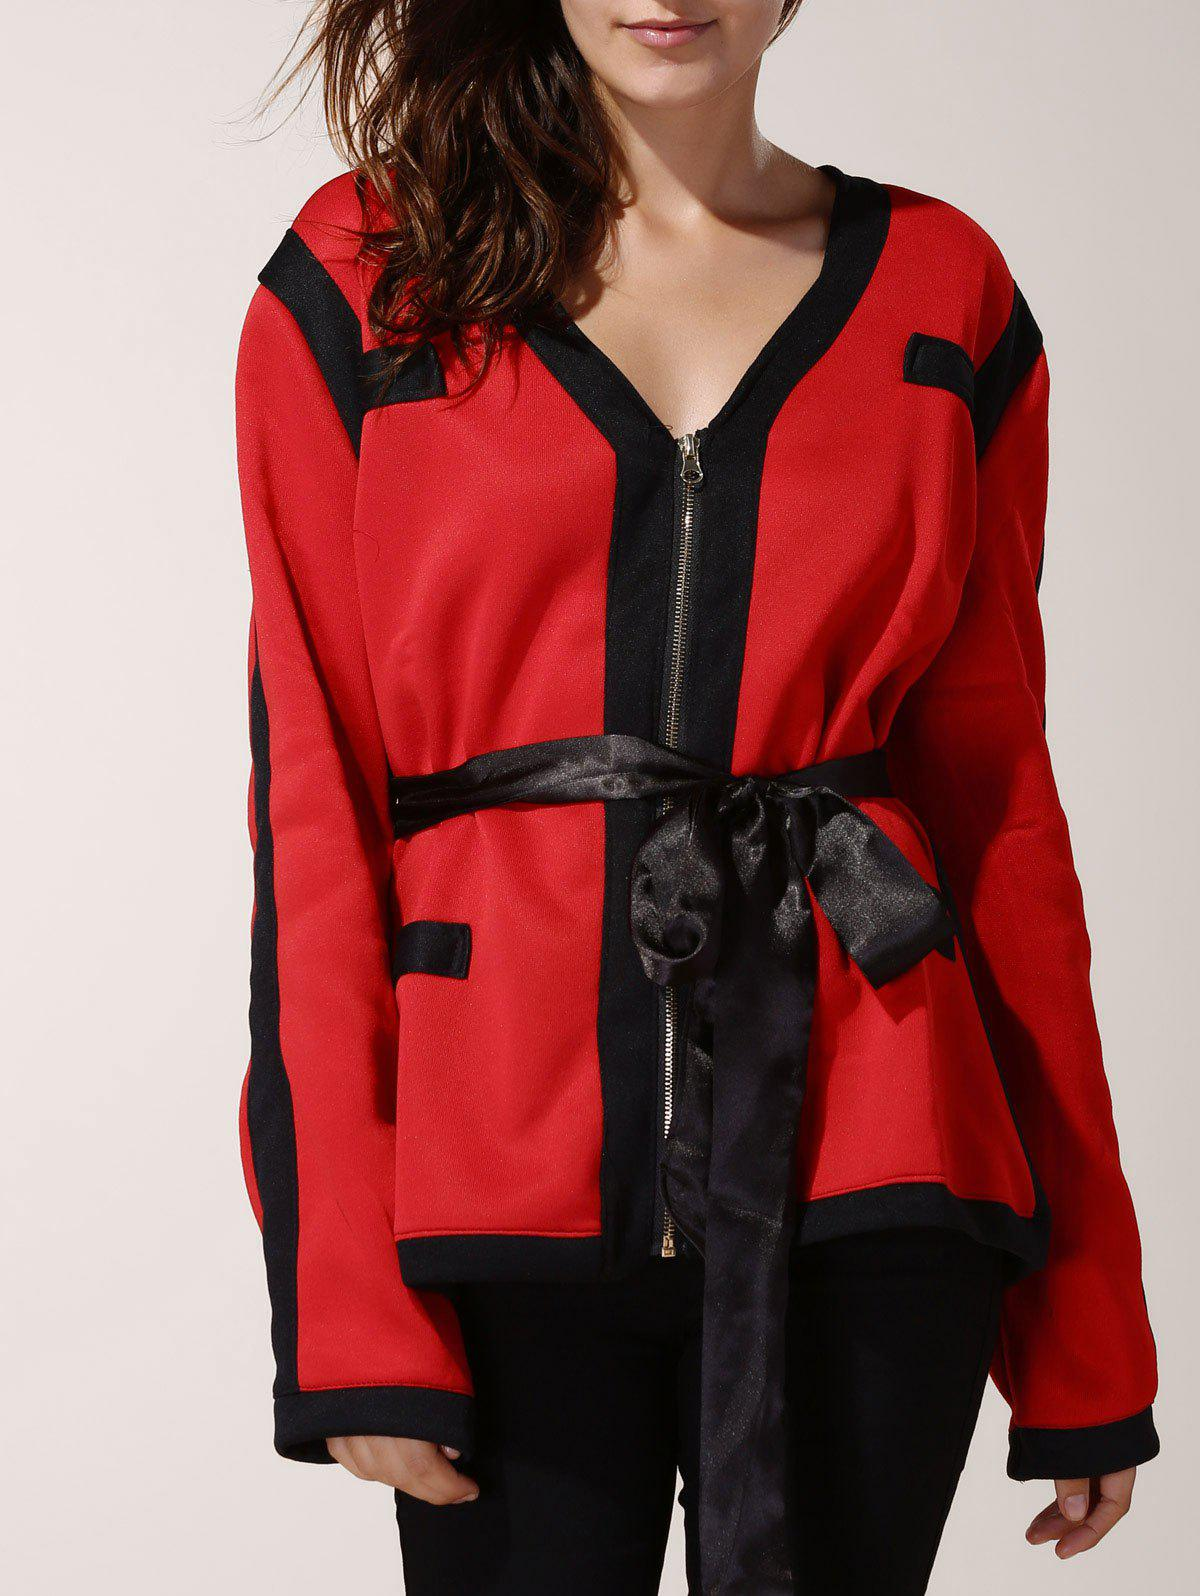 Stylish Women's V-Neck Long Sleeve Color Spliced Jacket - RED 3XL